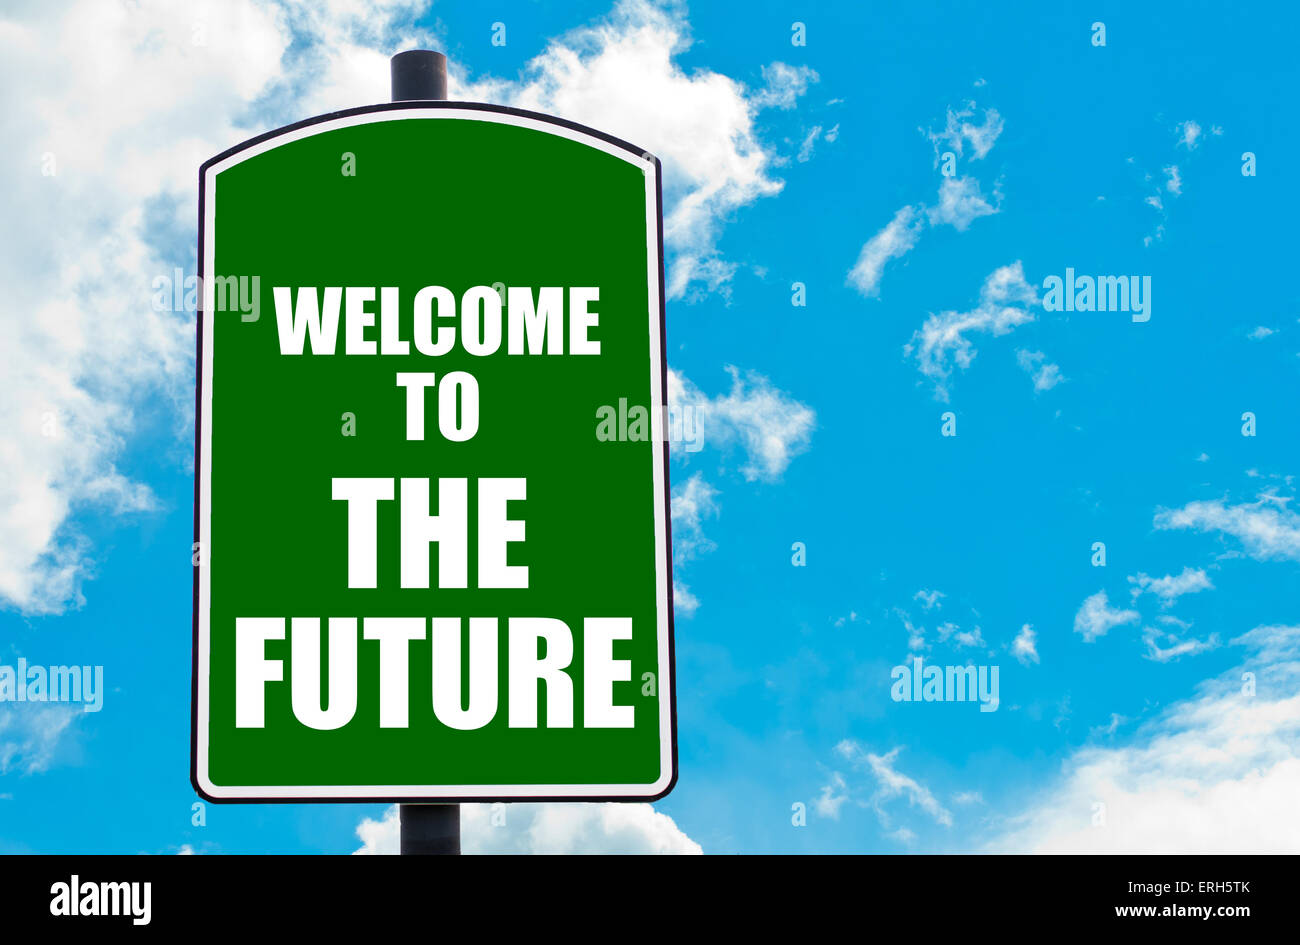 Road sign welcome future words stock photos road sign welcome green road sign with greeting message welcome to the future isolated over clear blue sky background m4hsunfo